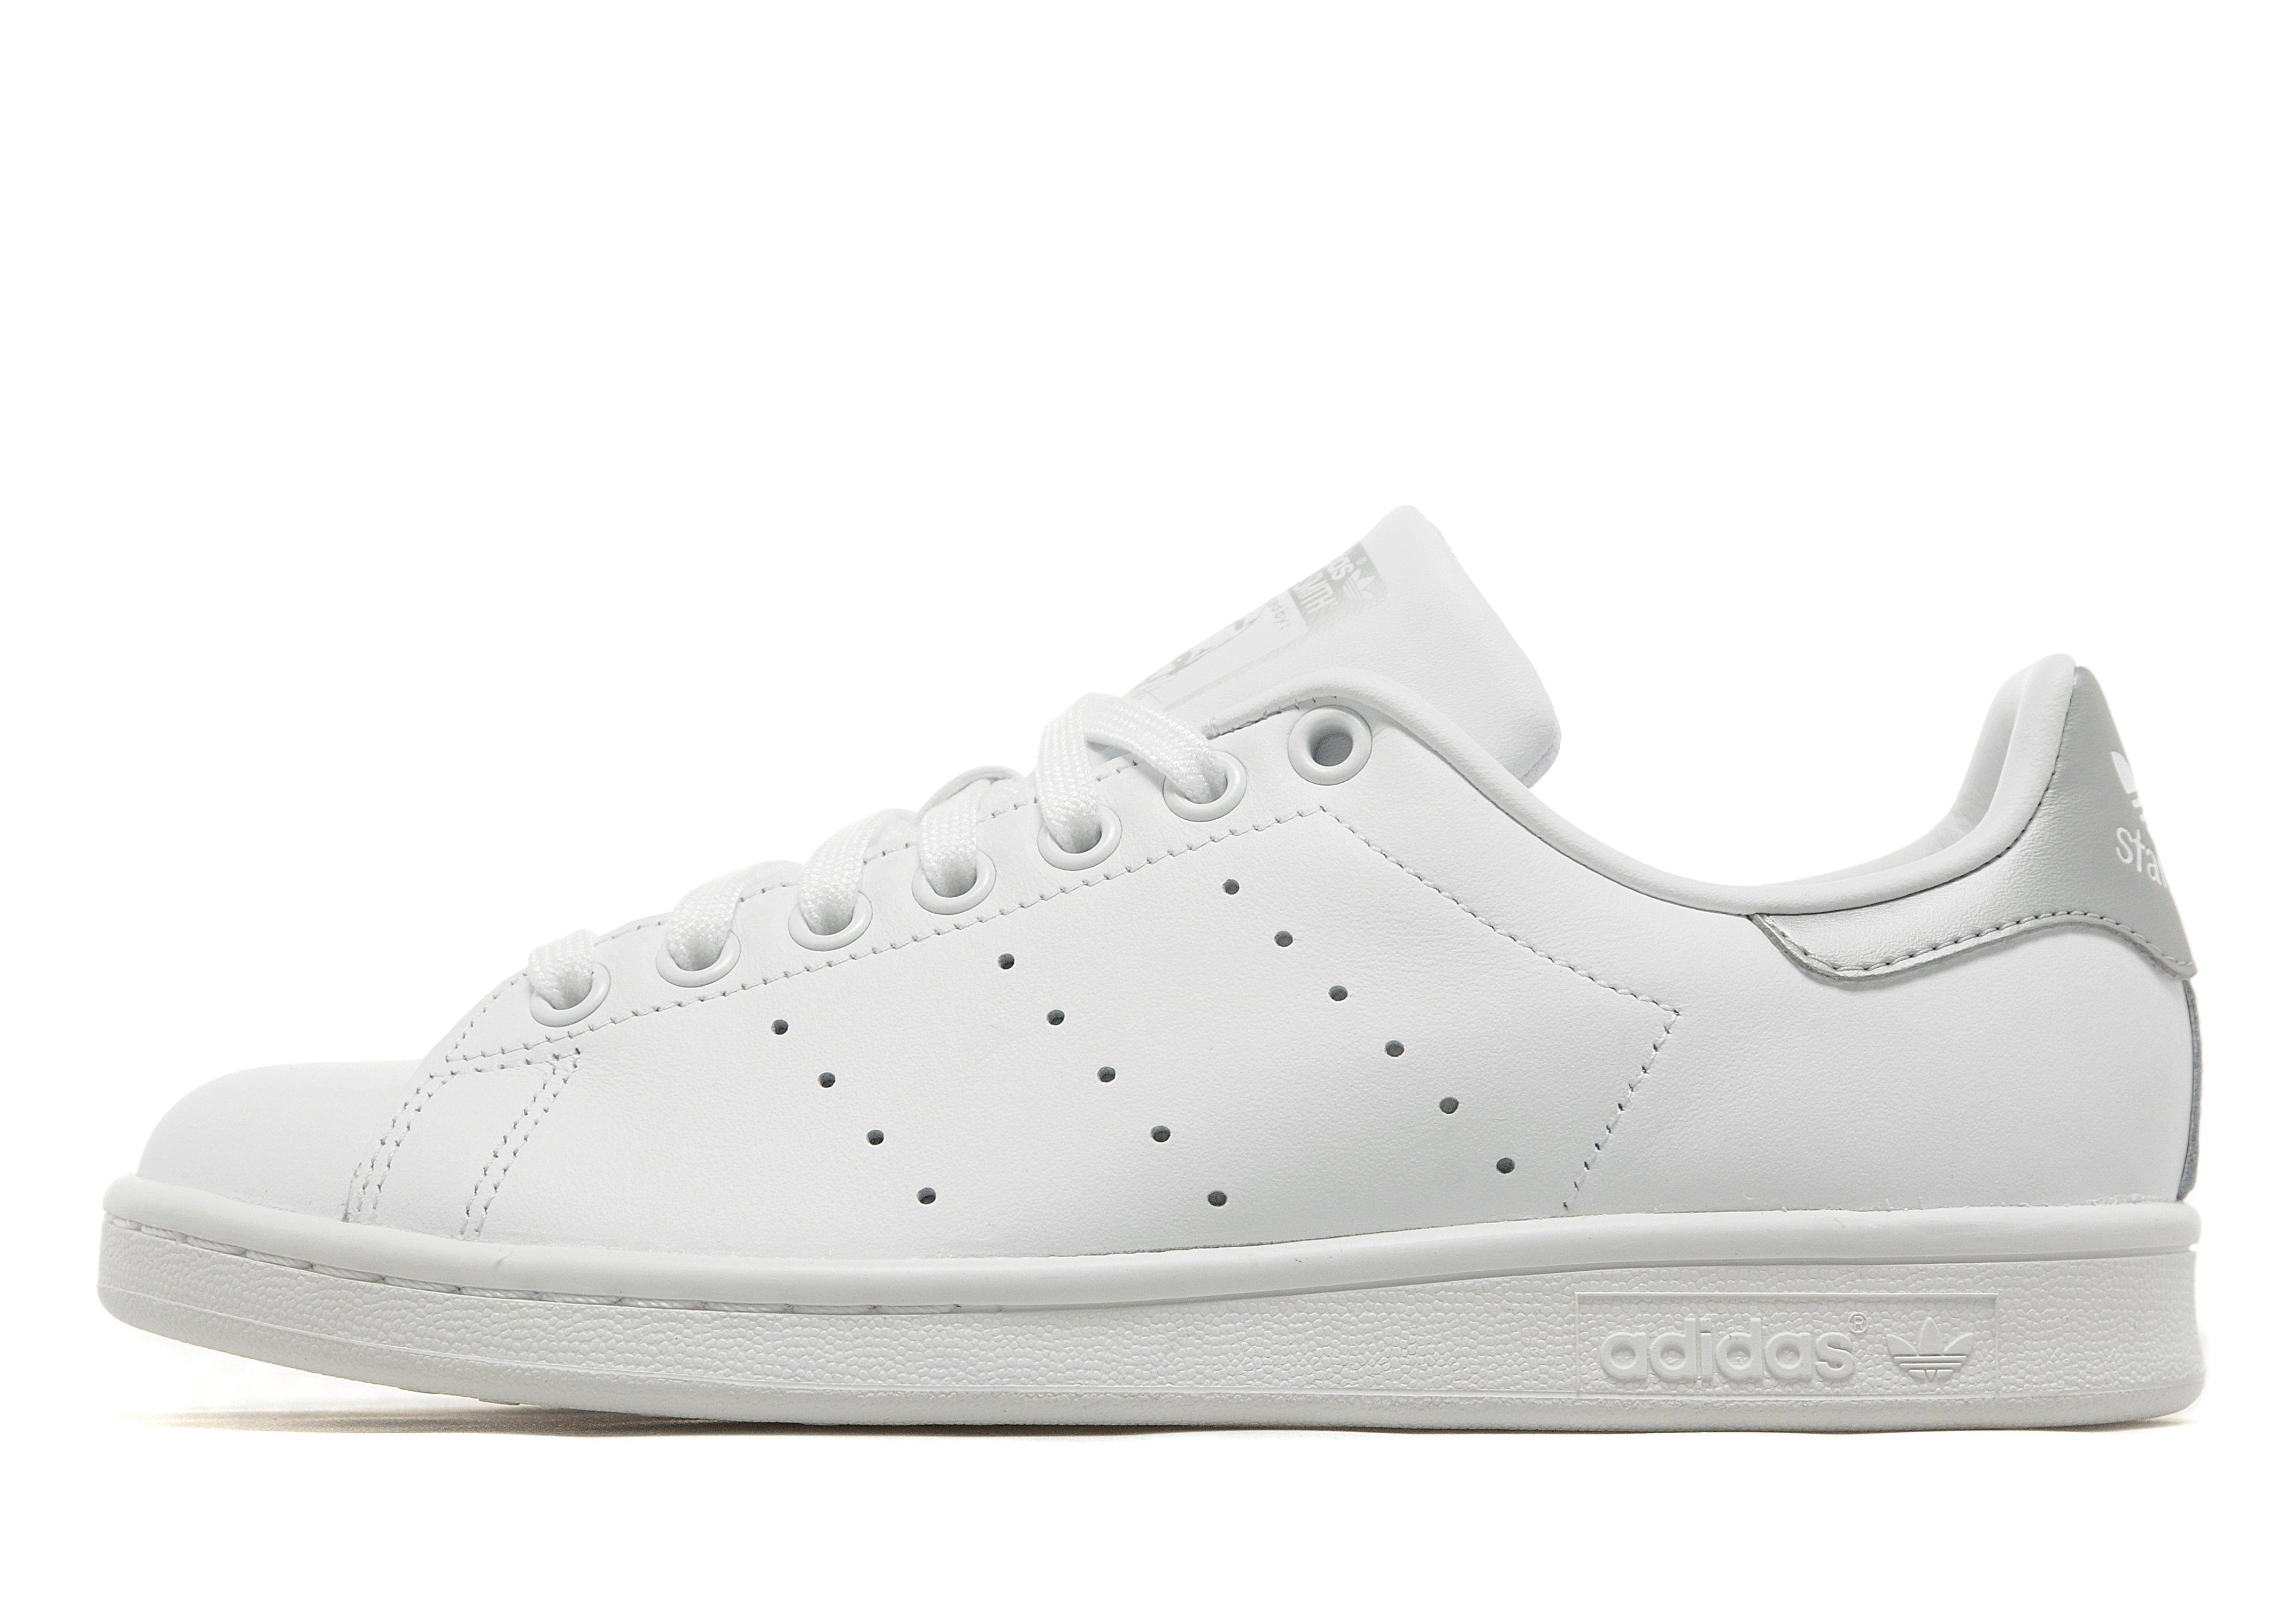 2db65858cda adidas stan smith dafiti